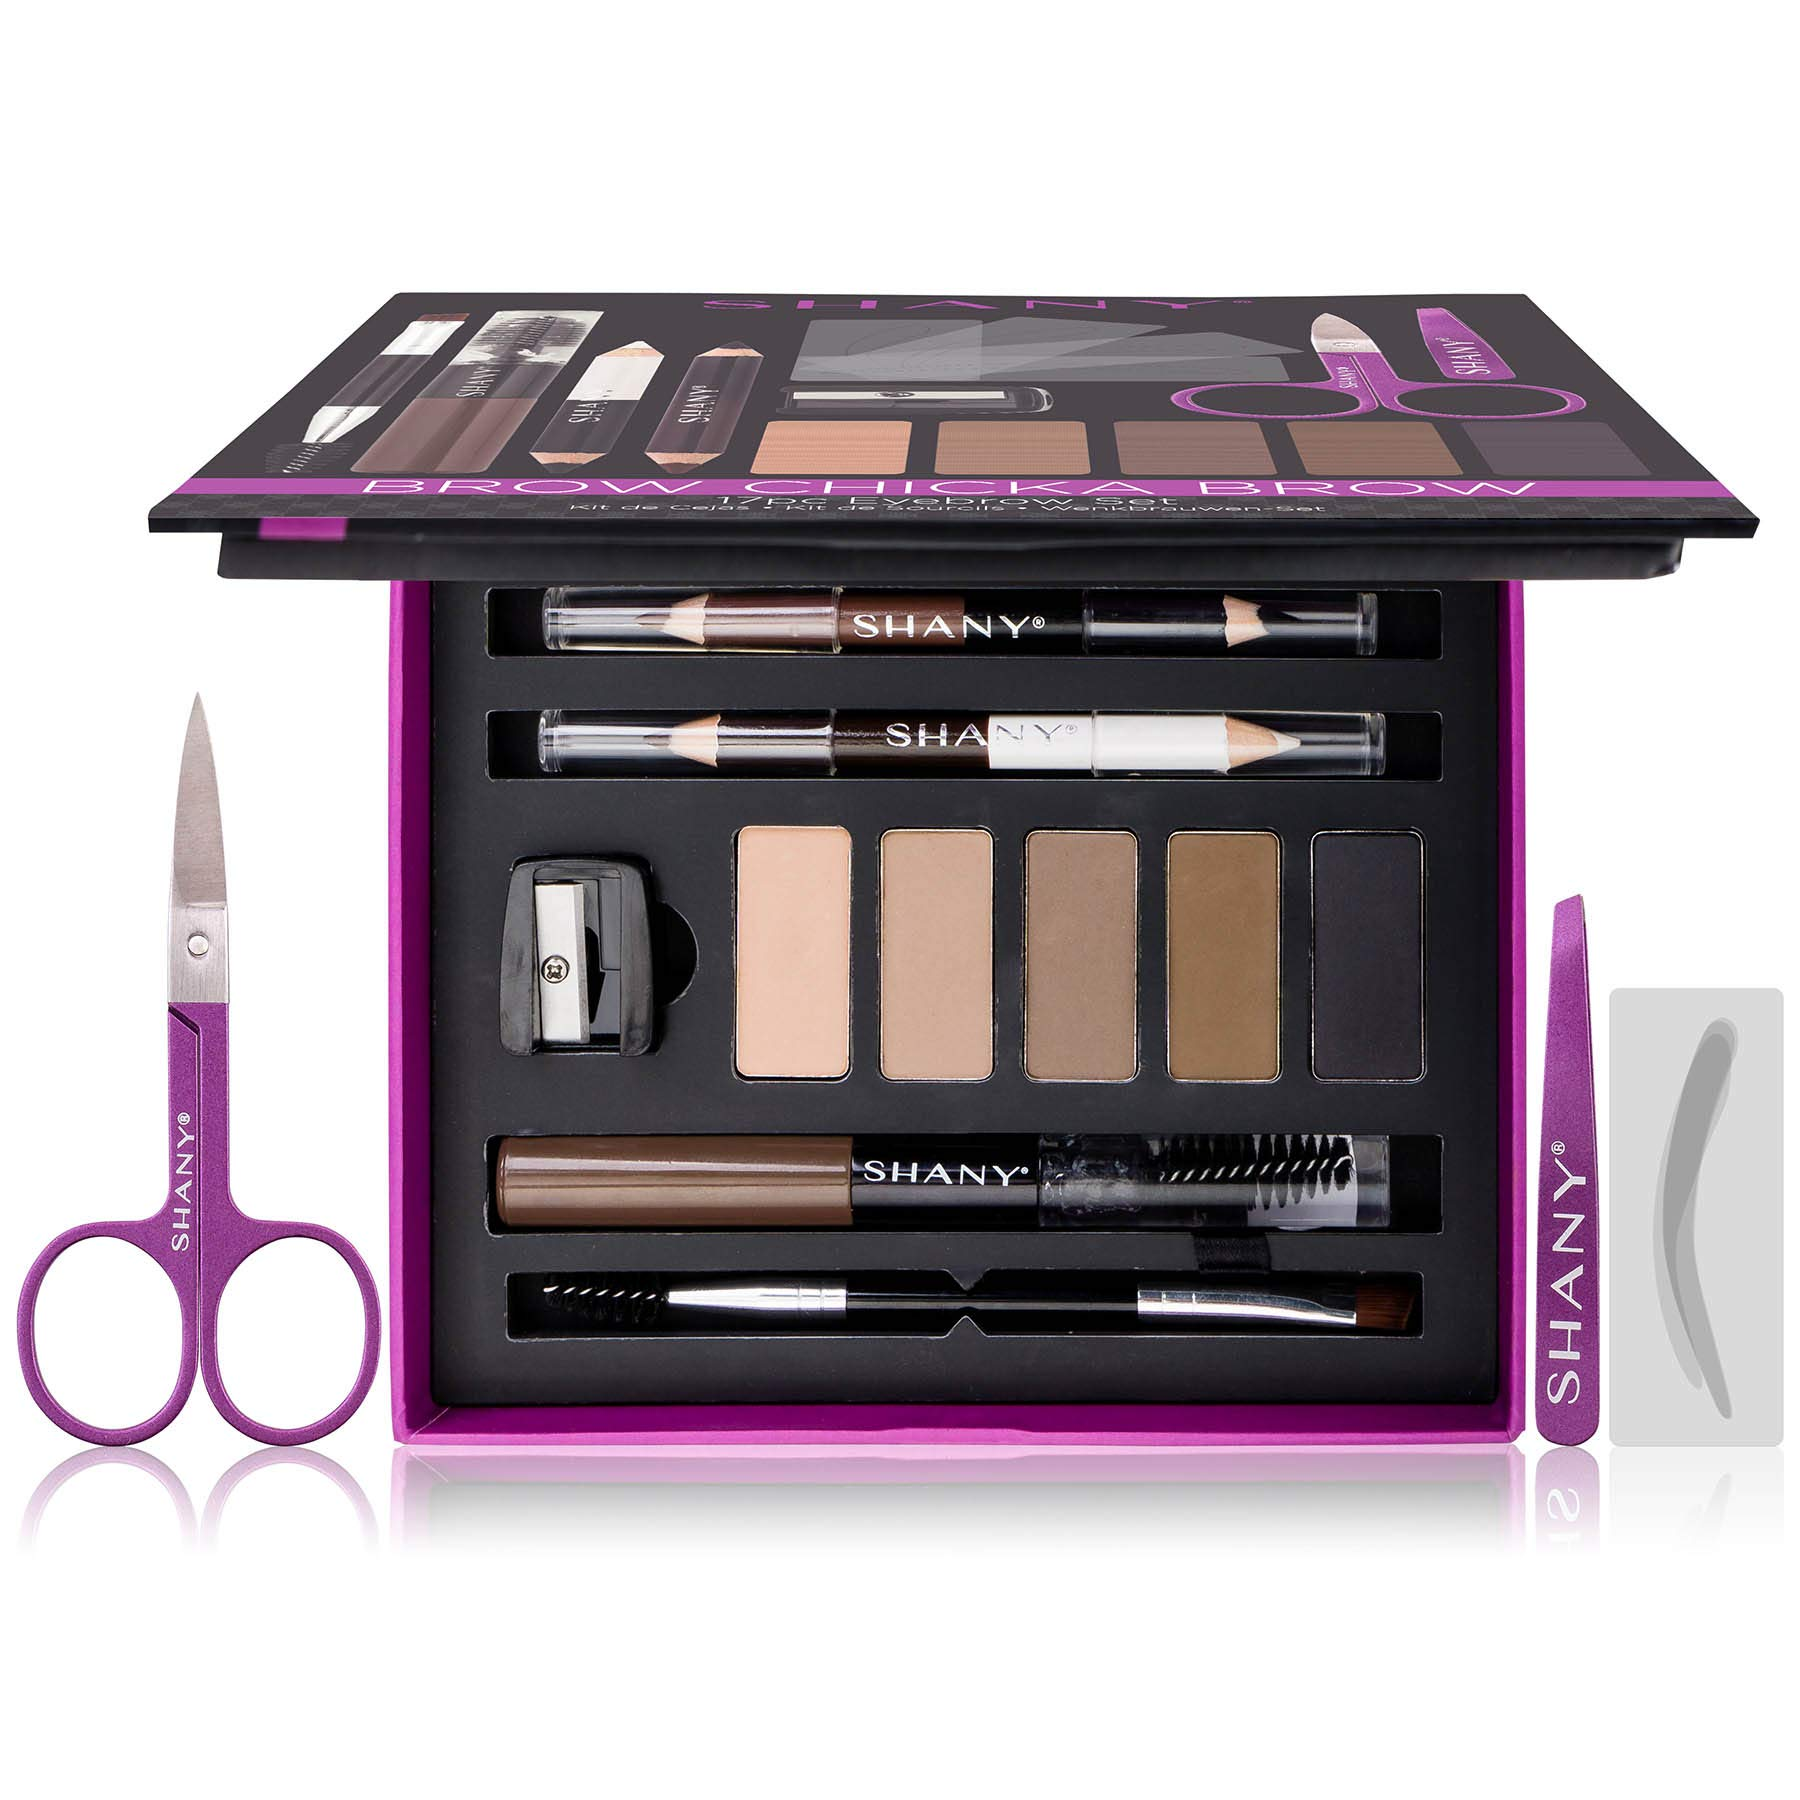 SHANY Brow Chicka Brow Eyebrow Set - 17 Piece Eyebrow Makeup Kit with Brow Powder, Brow Gel, Dual Ended Pencils, Stencils, Scissors, and Tweezers - All Hair Colors